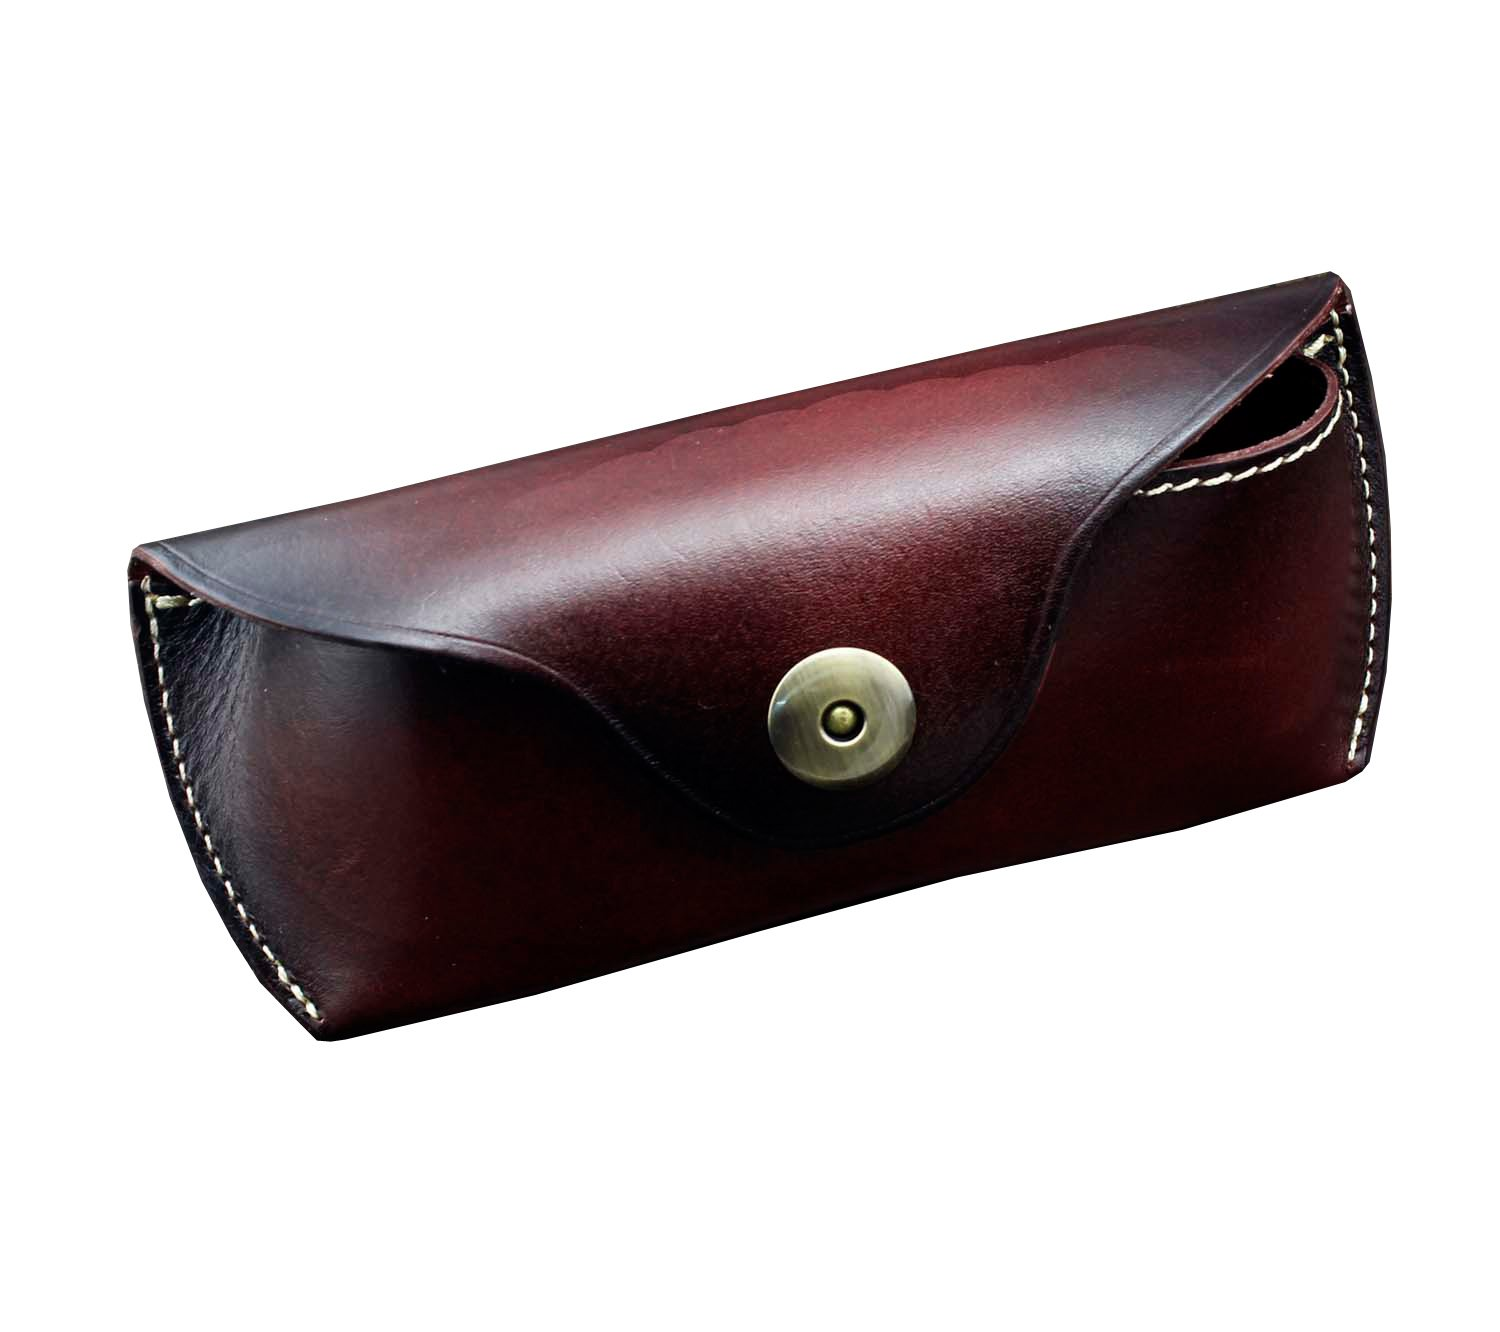 Real Cow Leather Handmade Glasses Pouch Vintage Sunglasses Belt Loop Case (wine red)